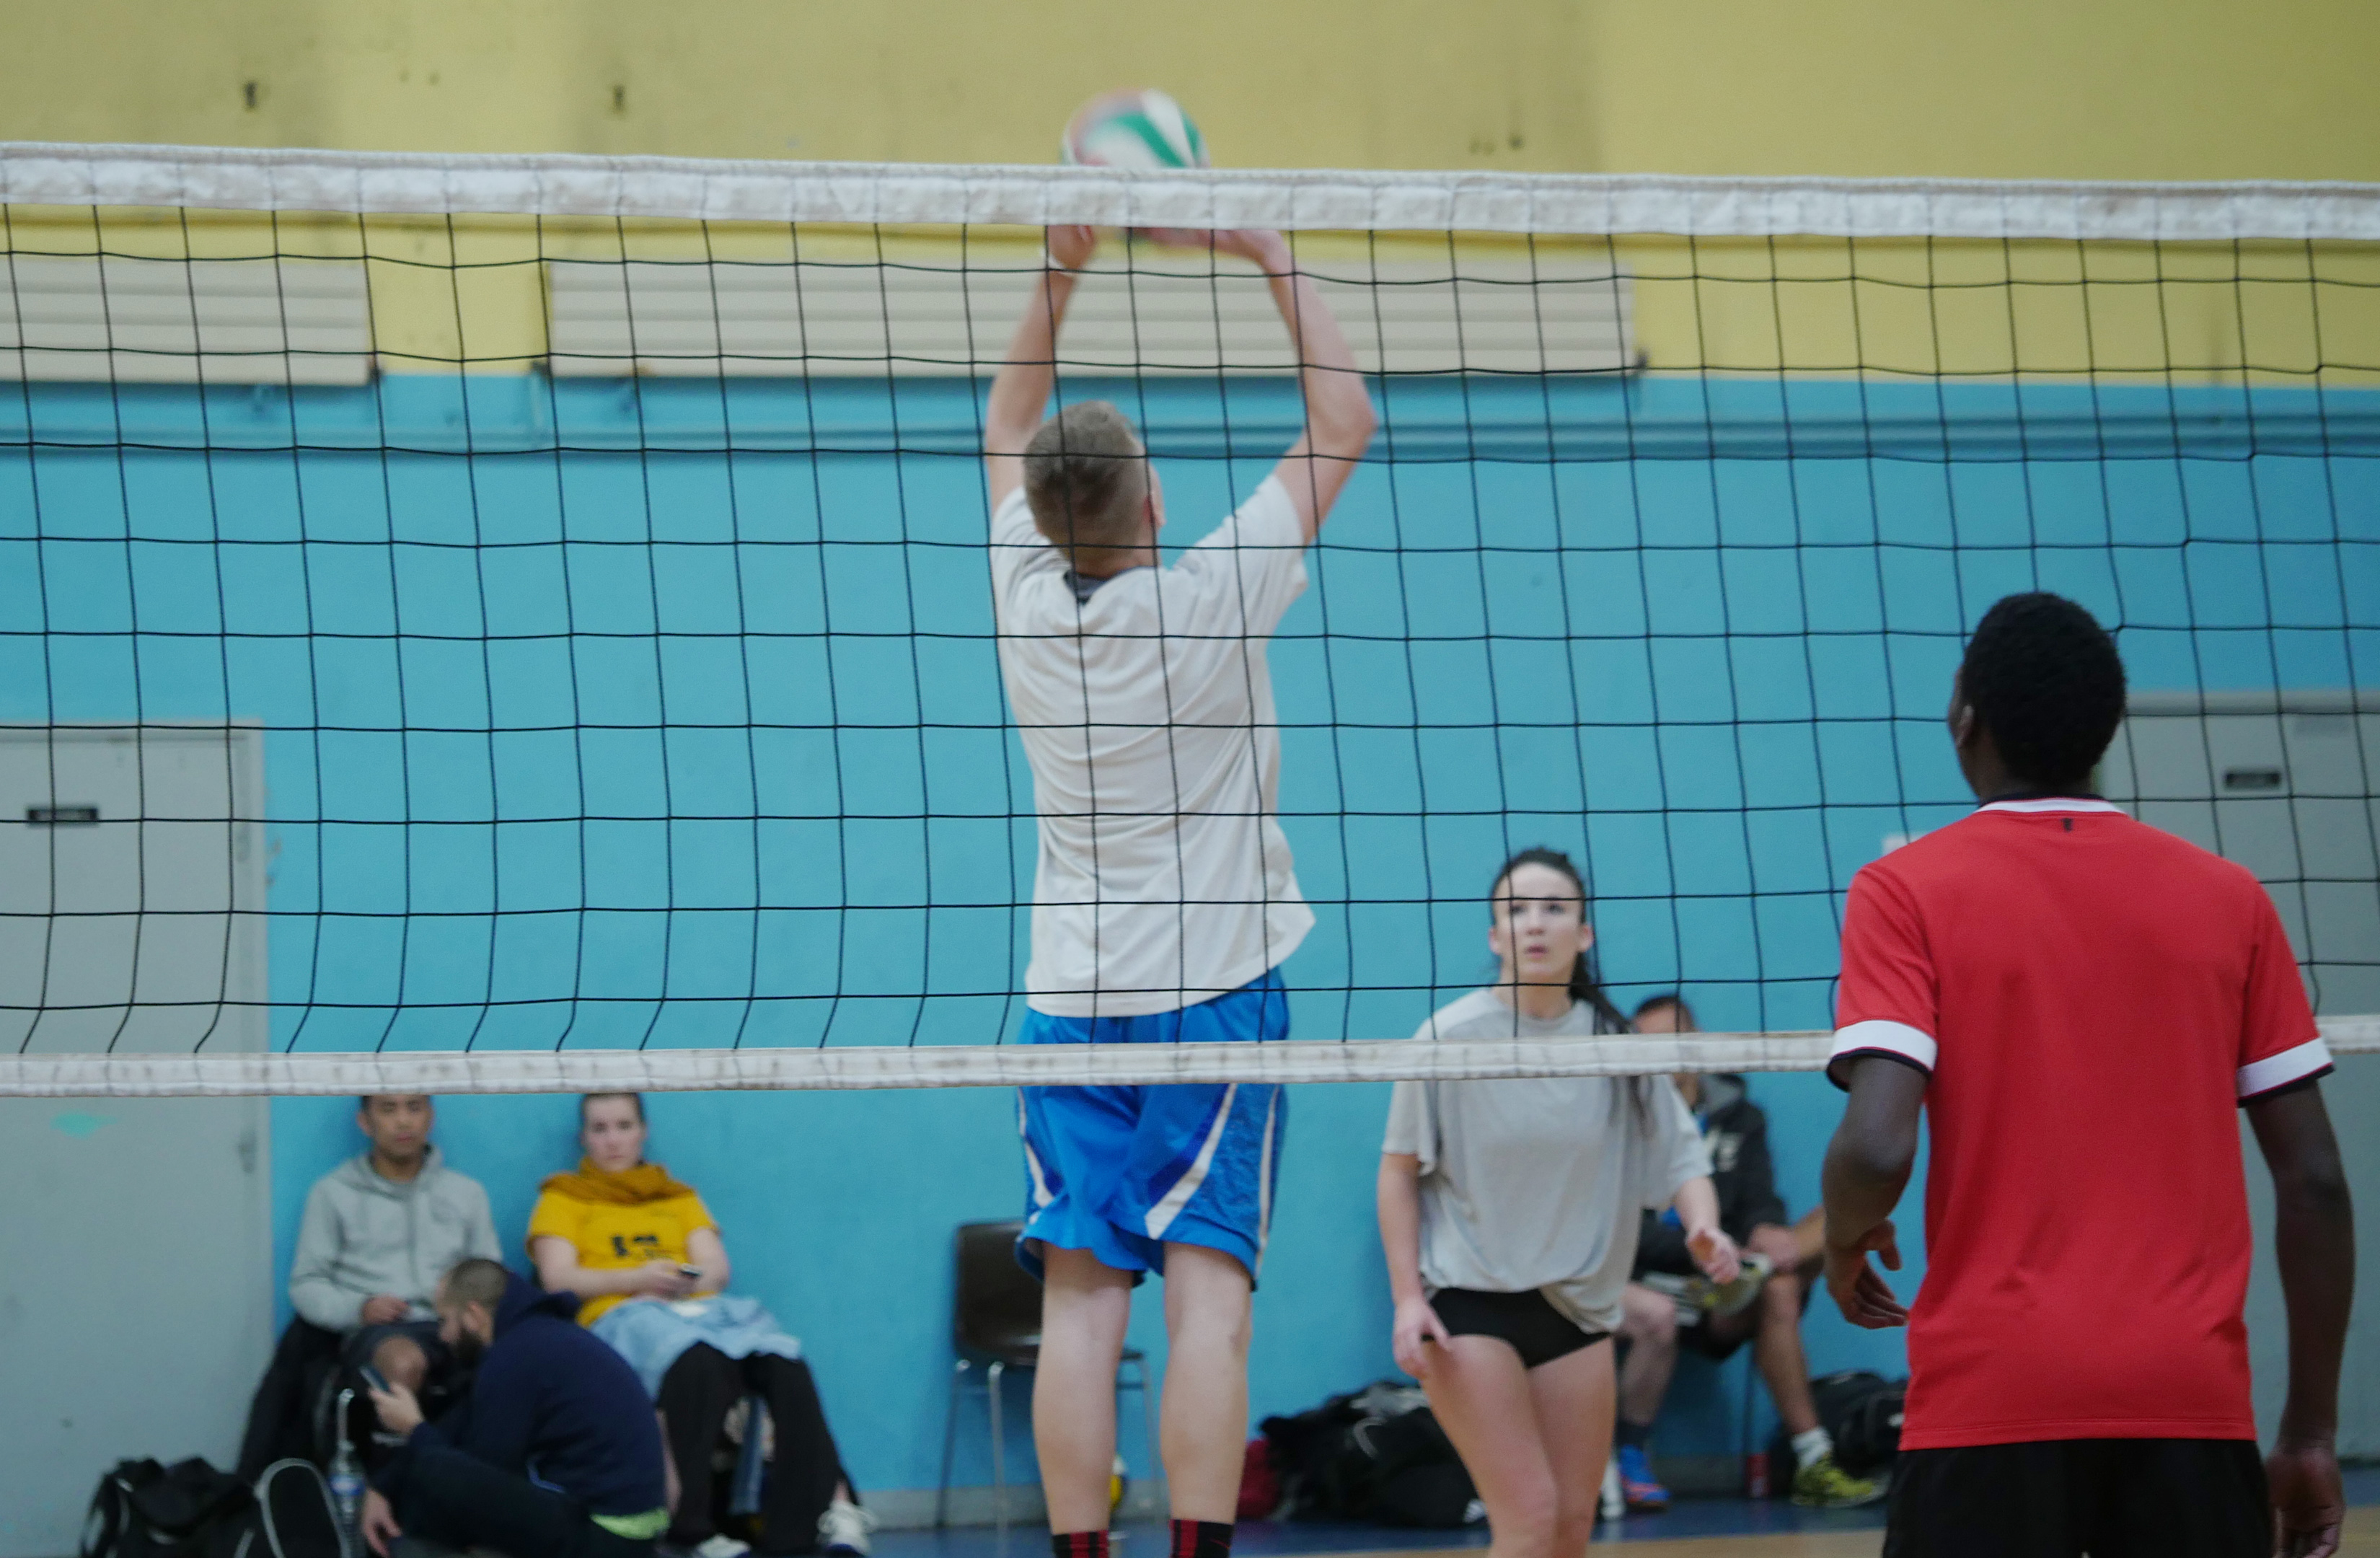 Tournoi Volley USMA 2015-21.JPG